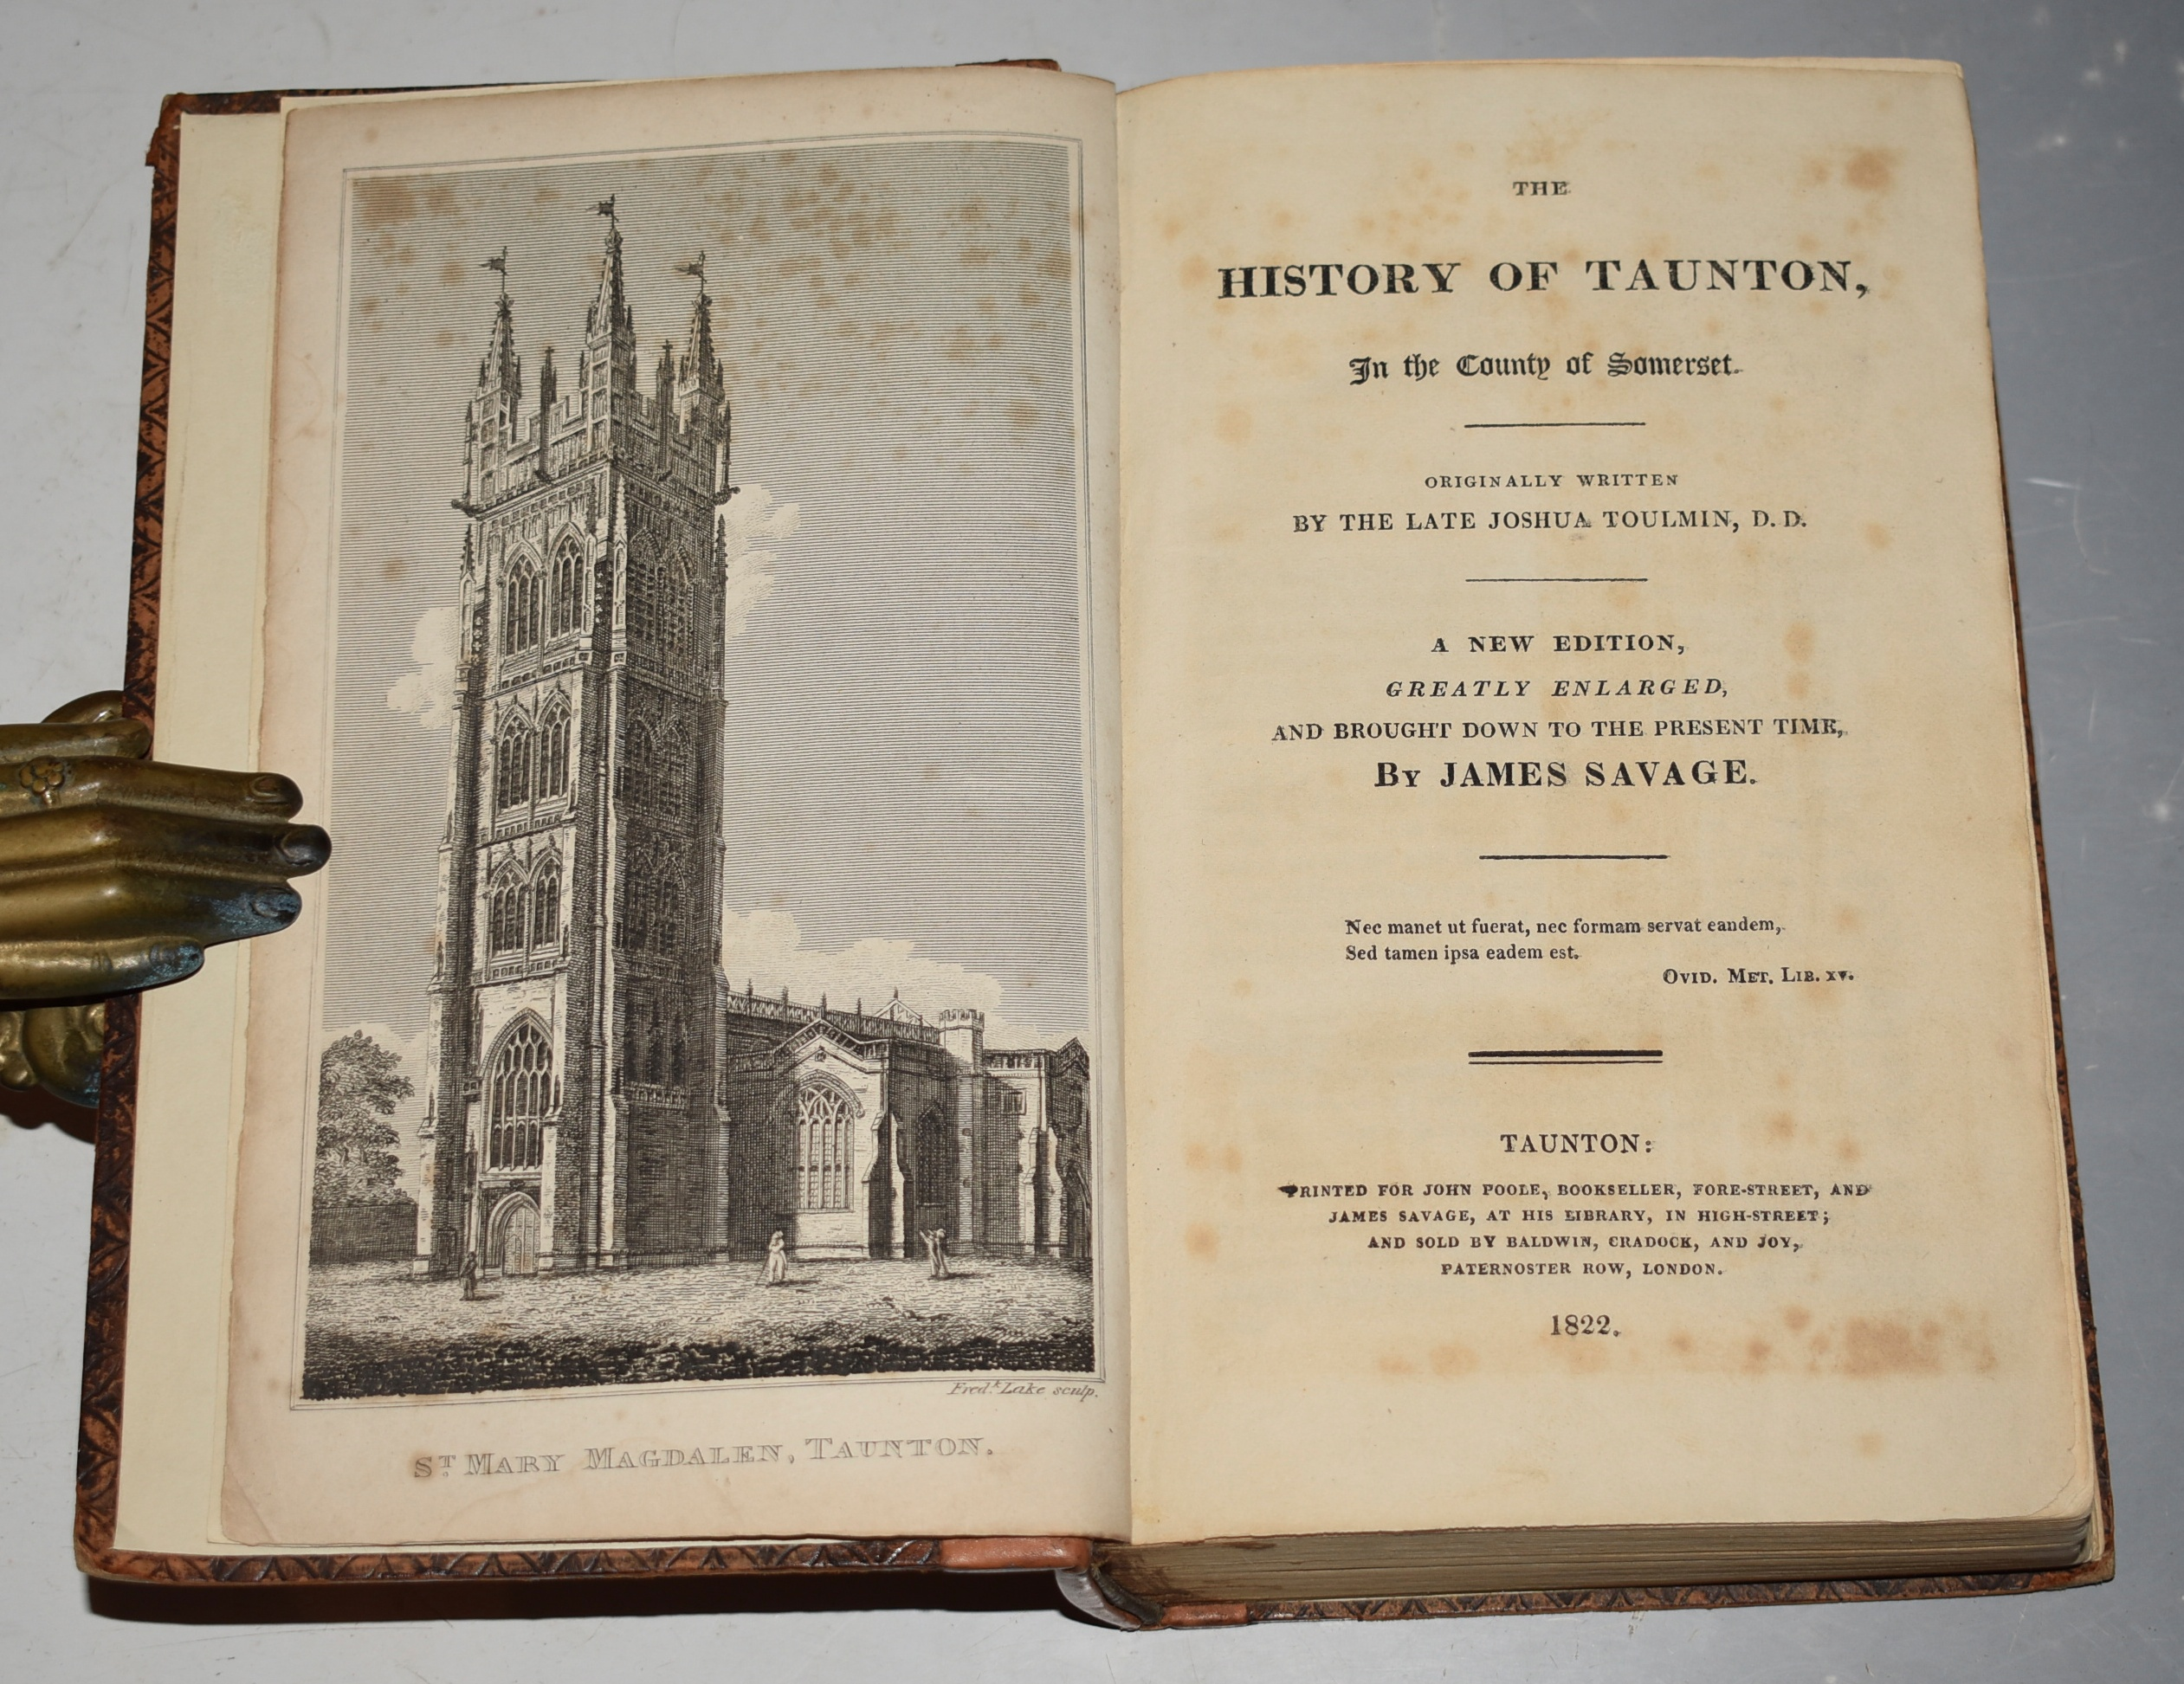 Image for The History of Taunton, In the County of Somerset. Originally Written By the Late Joshua Toulmin. A New Edition, Greatly Enlarged and brought down to the present time by James Savage.